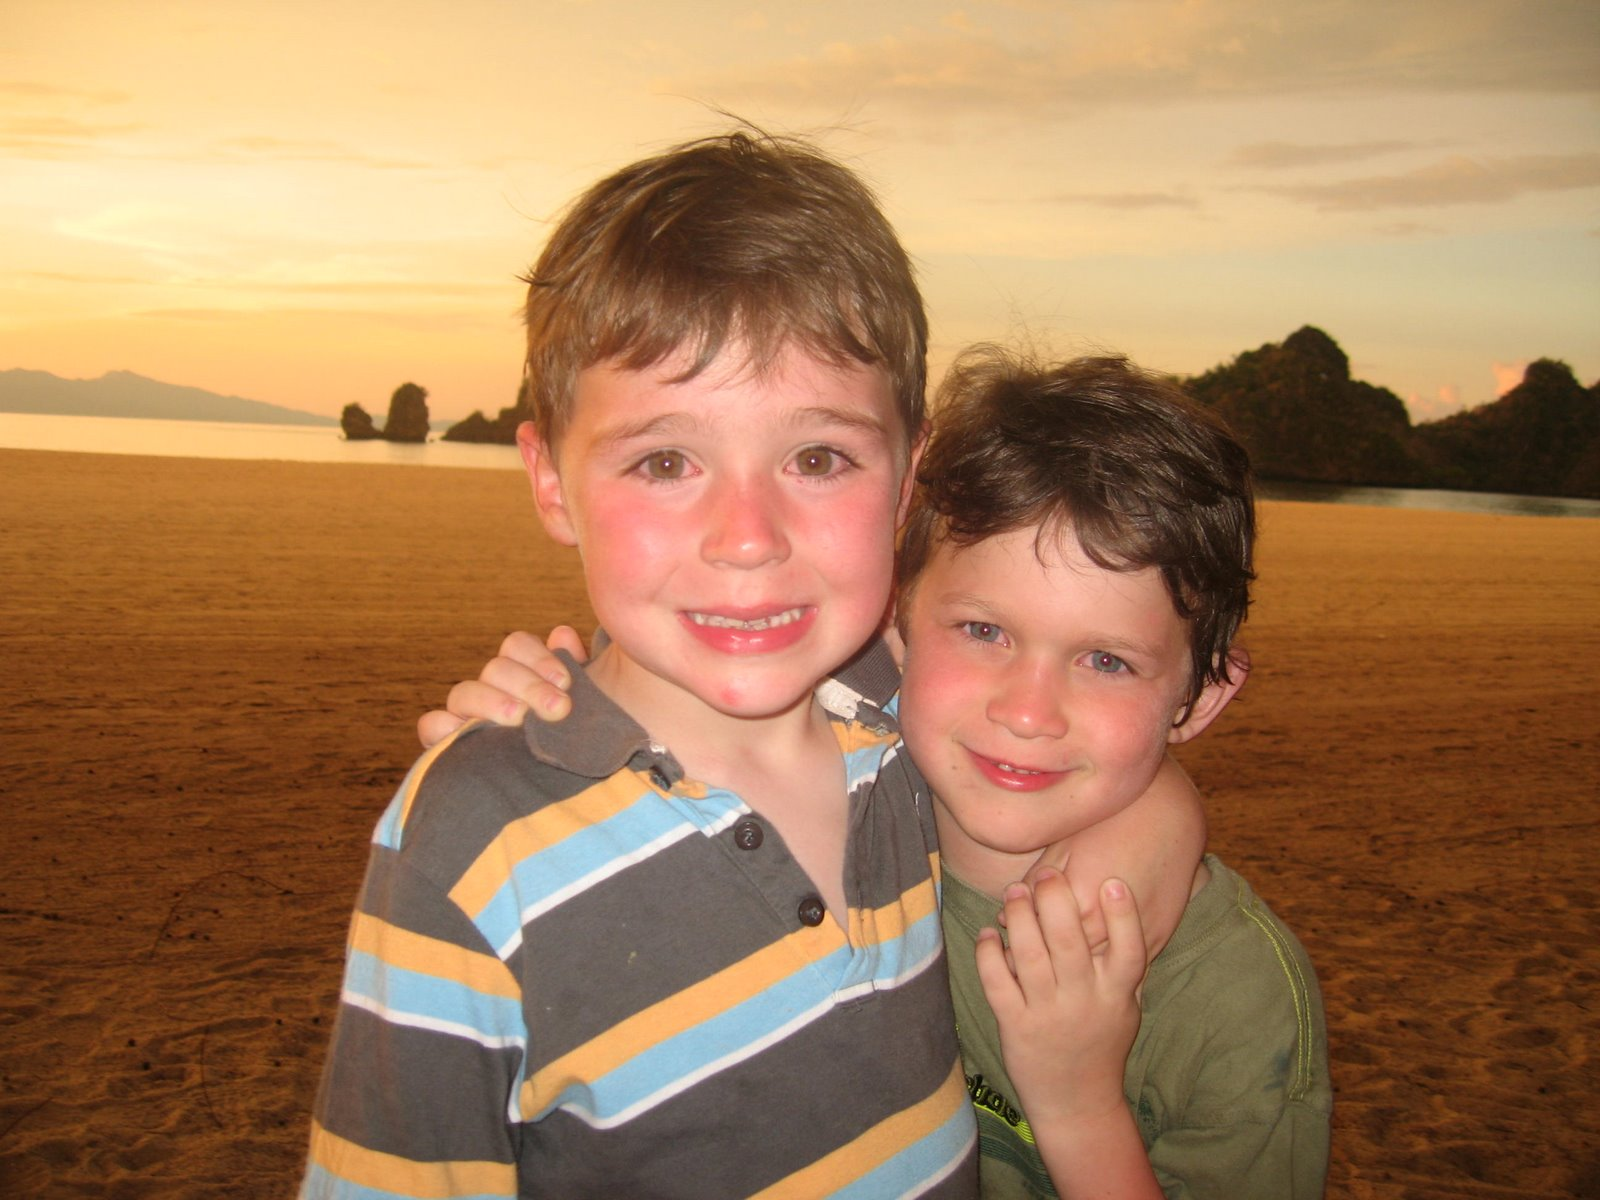 Eli and Hugo on the beach in Malaysia. Ah, expat life.